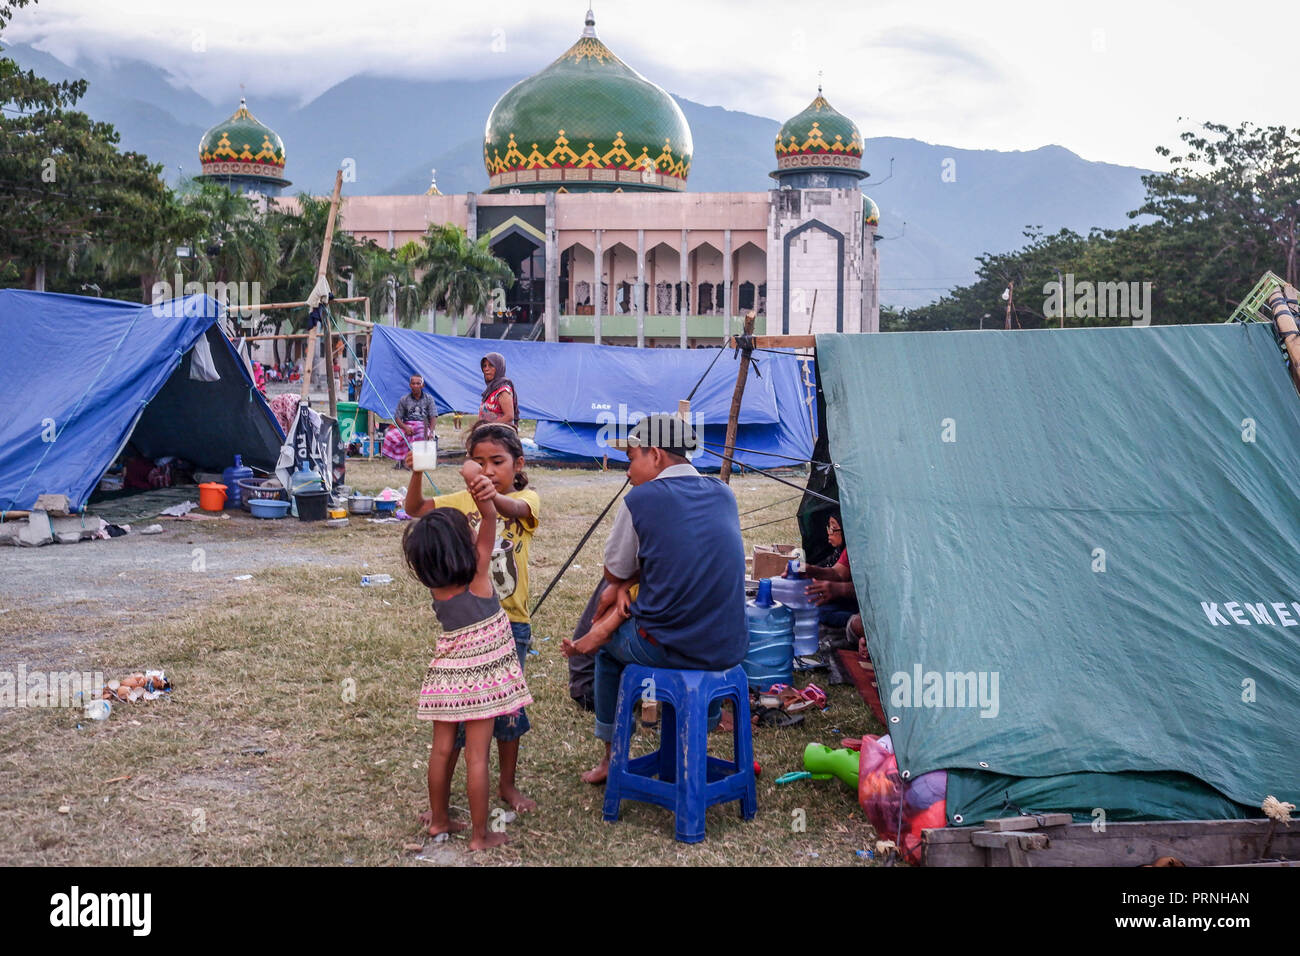 Palu, Indonesia. 4th Oct 2018. Refugees seen set up tents in the Lere Refugee settlement. A deadly earthquake measuring 7.7 magnitude and the tsunami wave caused by it has destroyed the city of Palu and much of the area in Central Sulawesi. According to the officials, death toll from devastating quake and tsunami rises to 1,347, around 800 people in hospitals are seriously injured and some 62,000 people have been displaced in 24 camps around the region. Credit: SOPA Images Limited/Alamy Live News - Stock Image